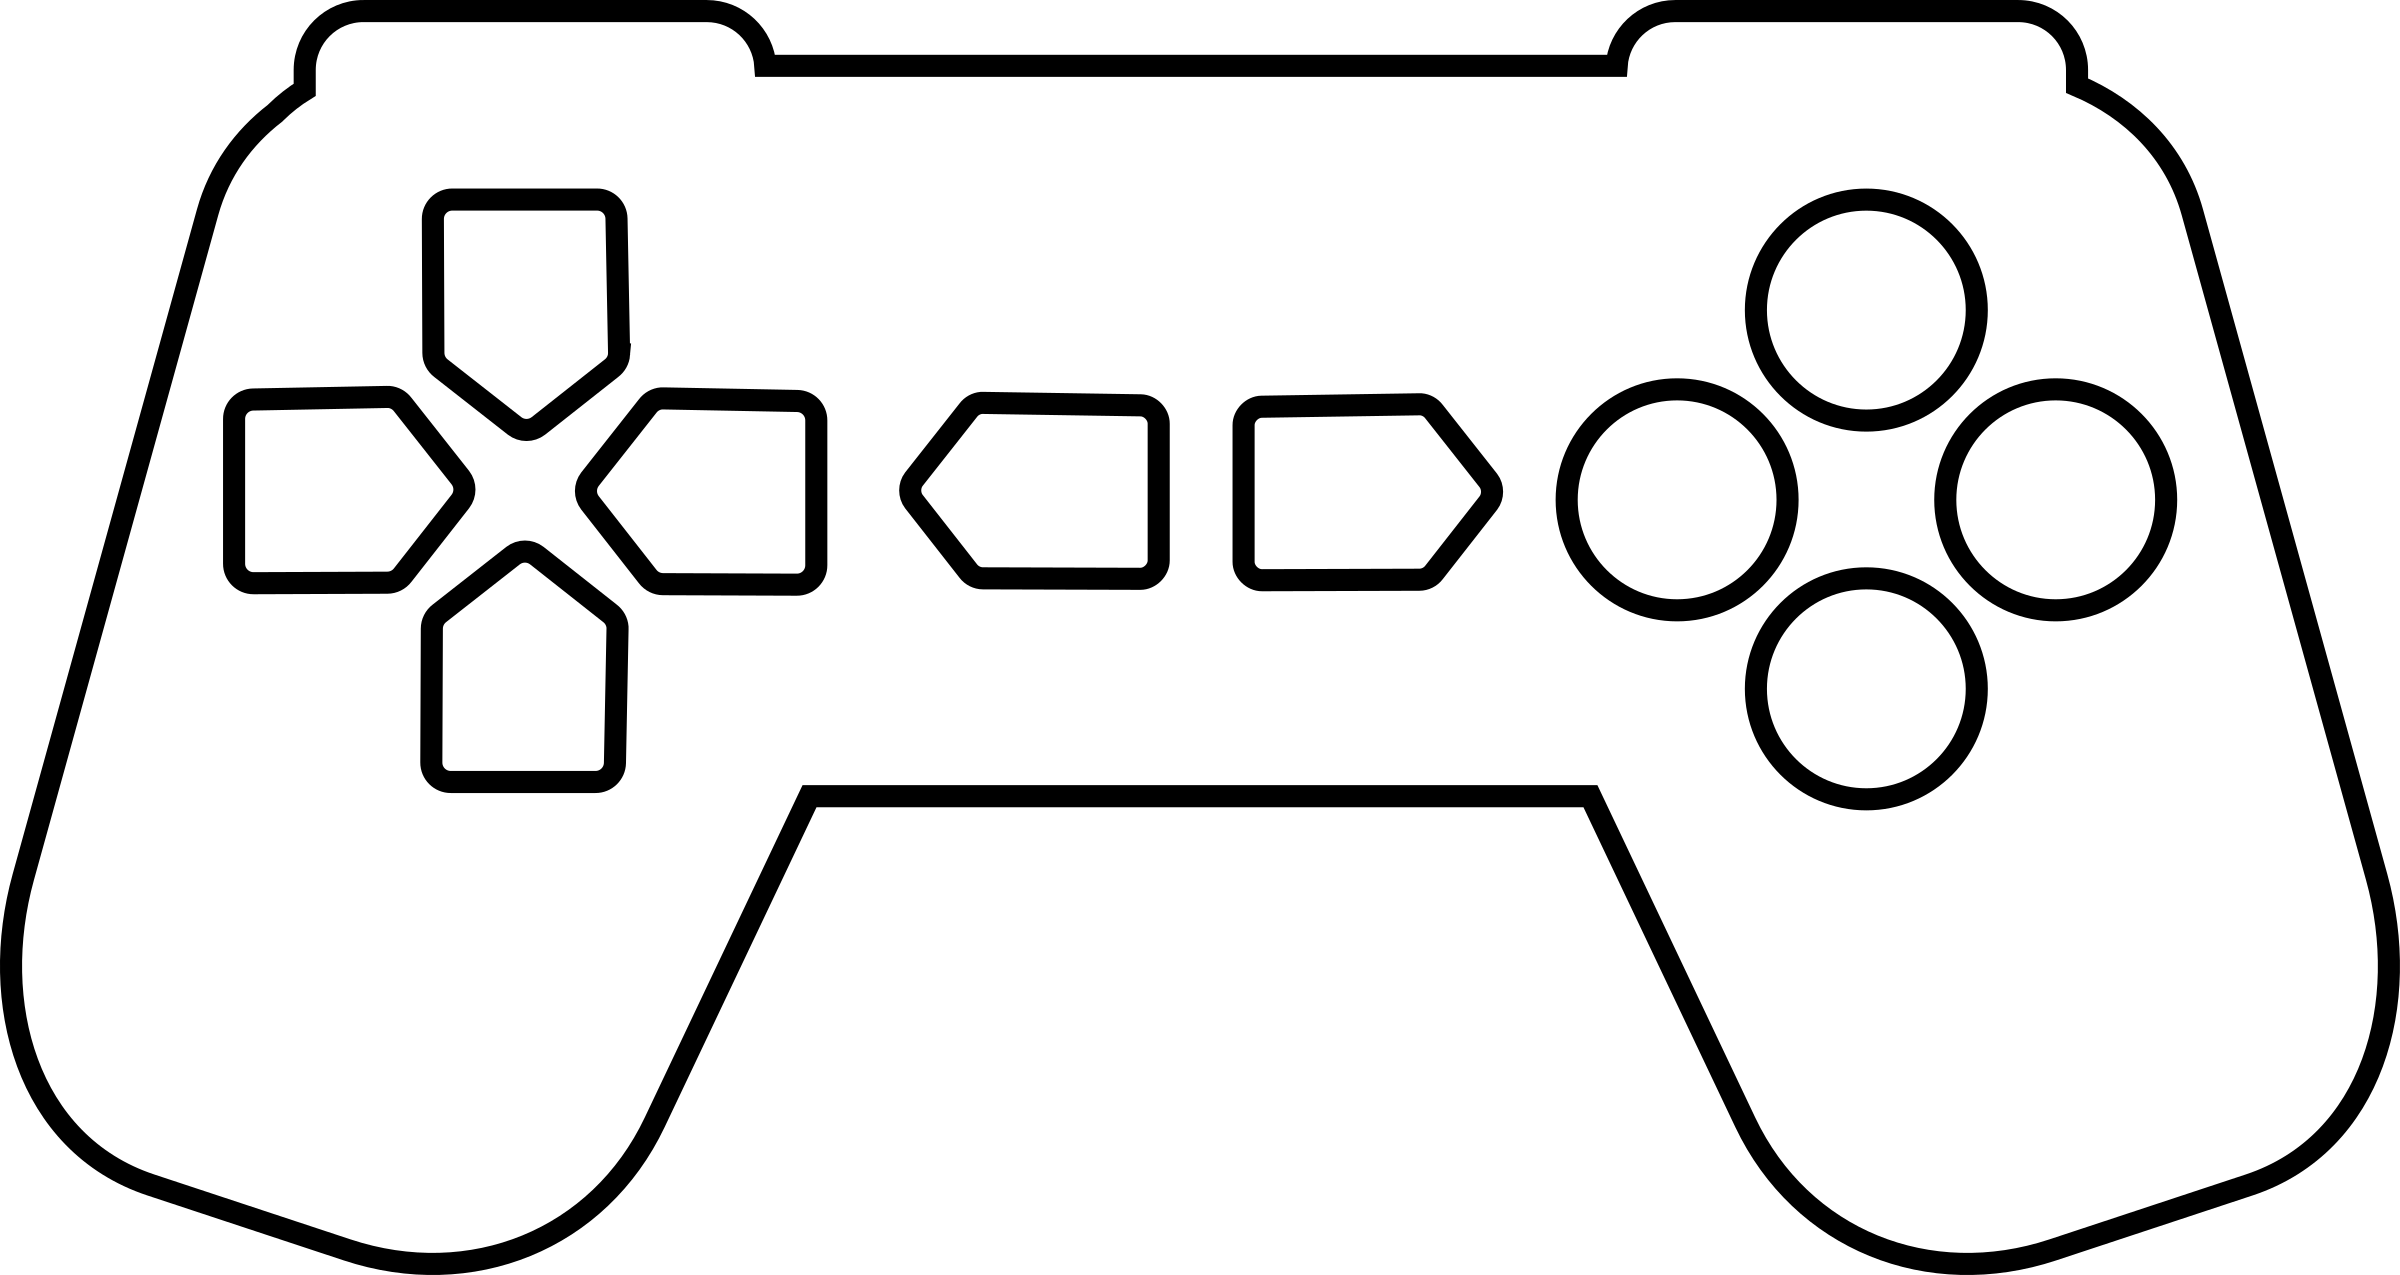 Game controller outline big. Games clipart black and white